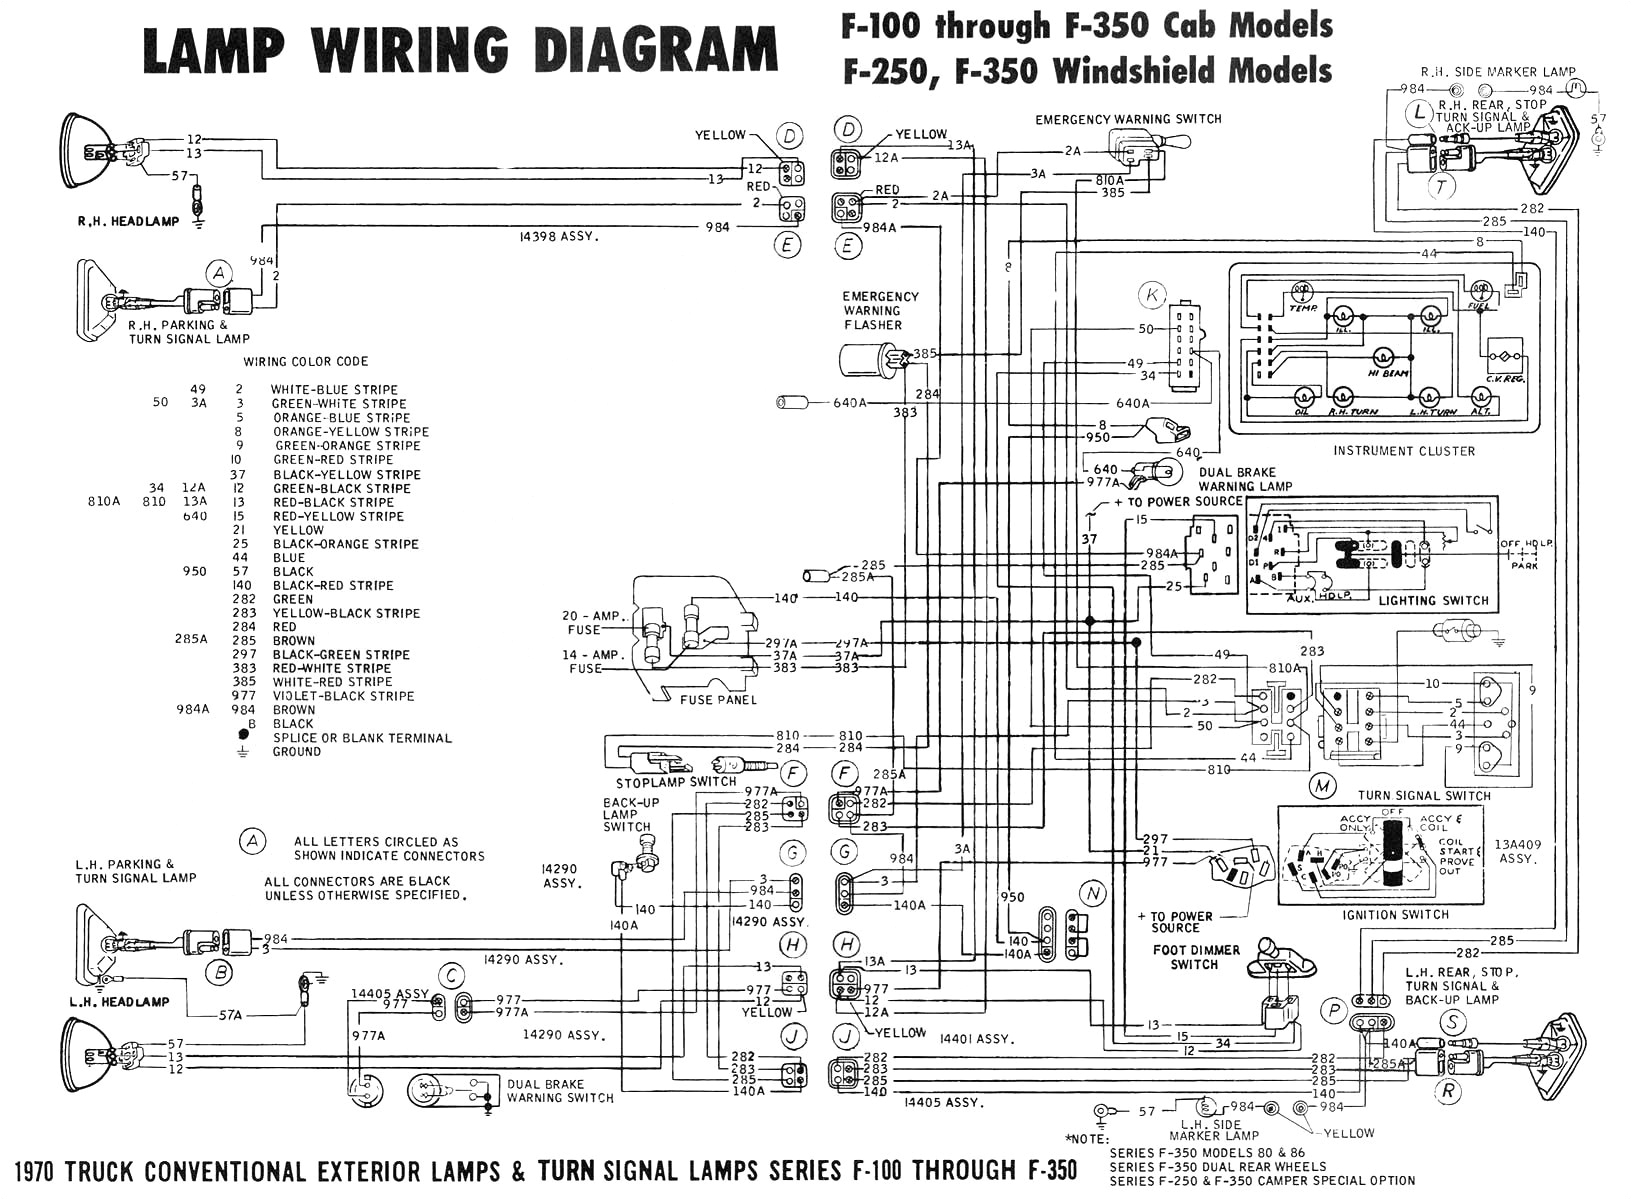 acewell ace 1500 wiring diagram data diagram schematic